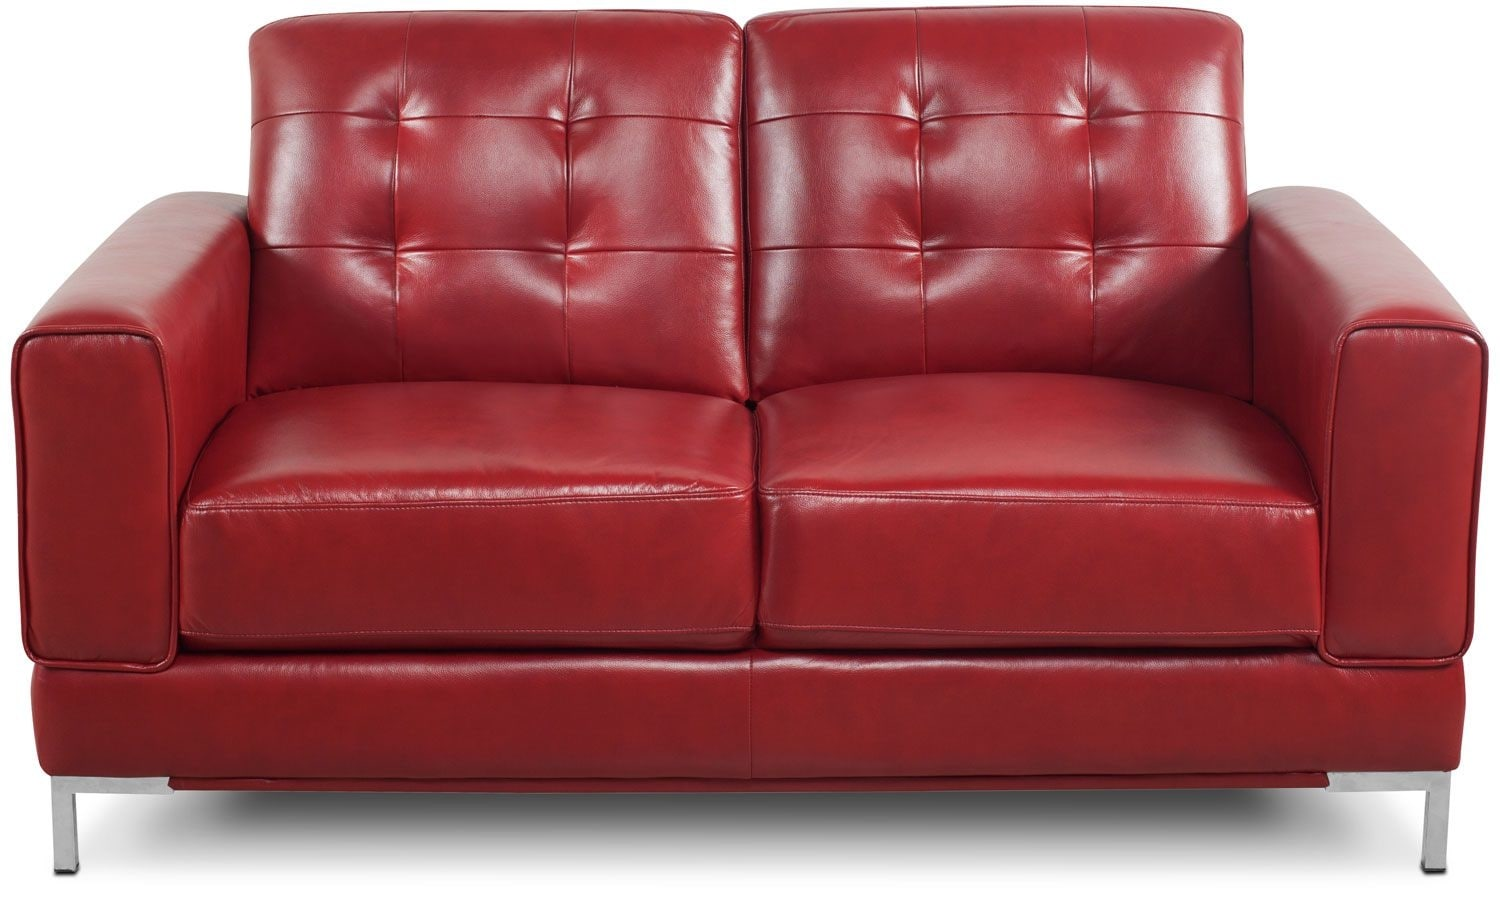 Myer Leather-Like Fabric Loveseat - Red